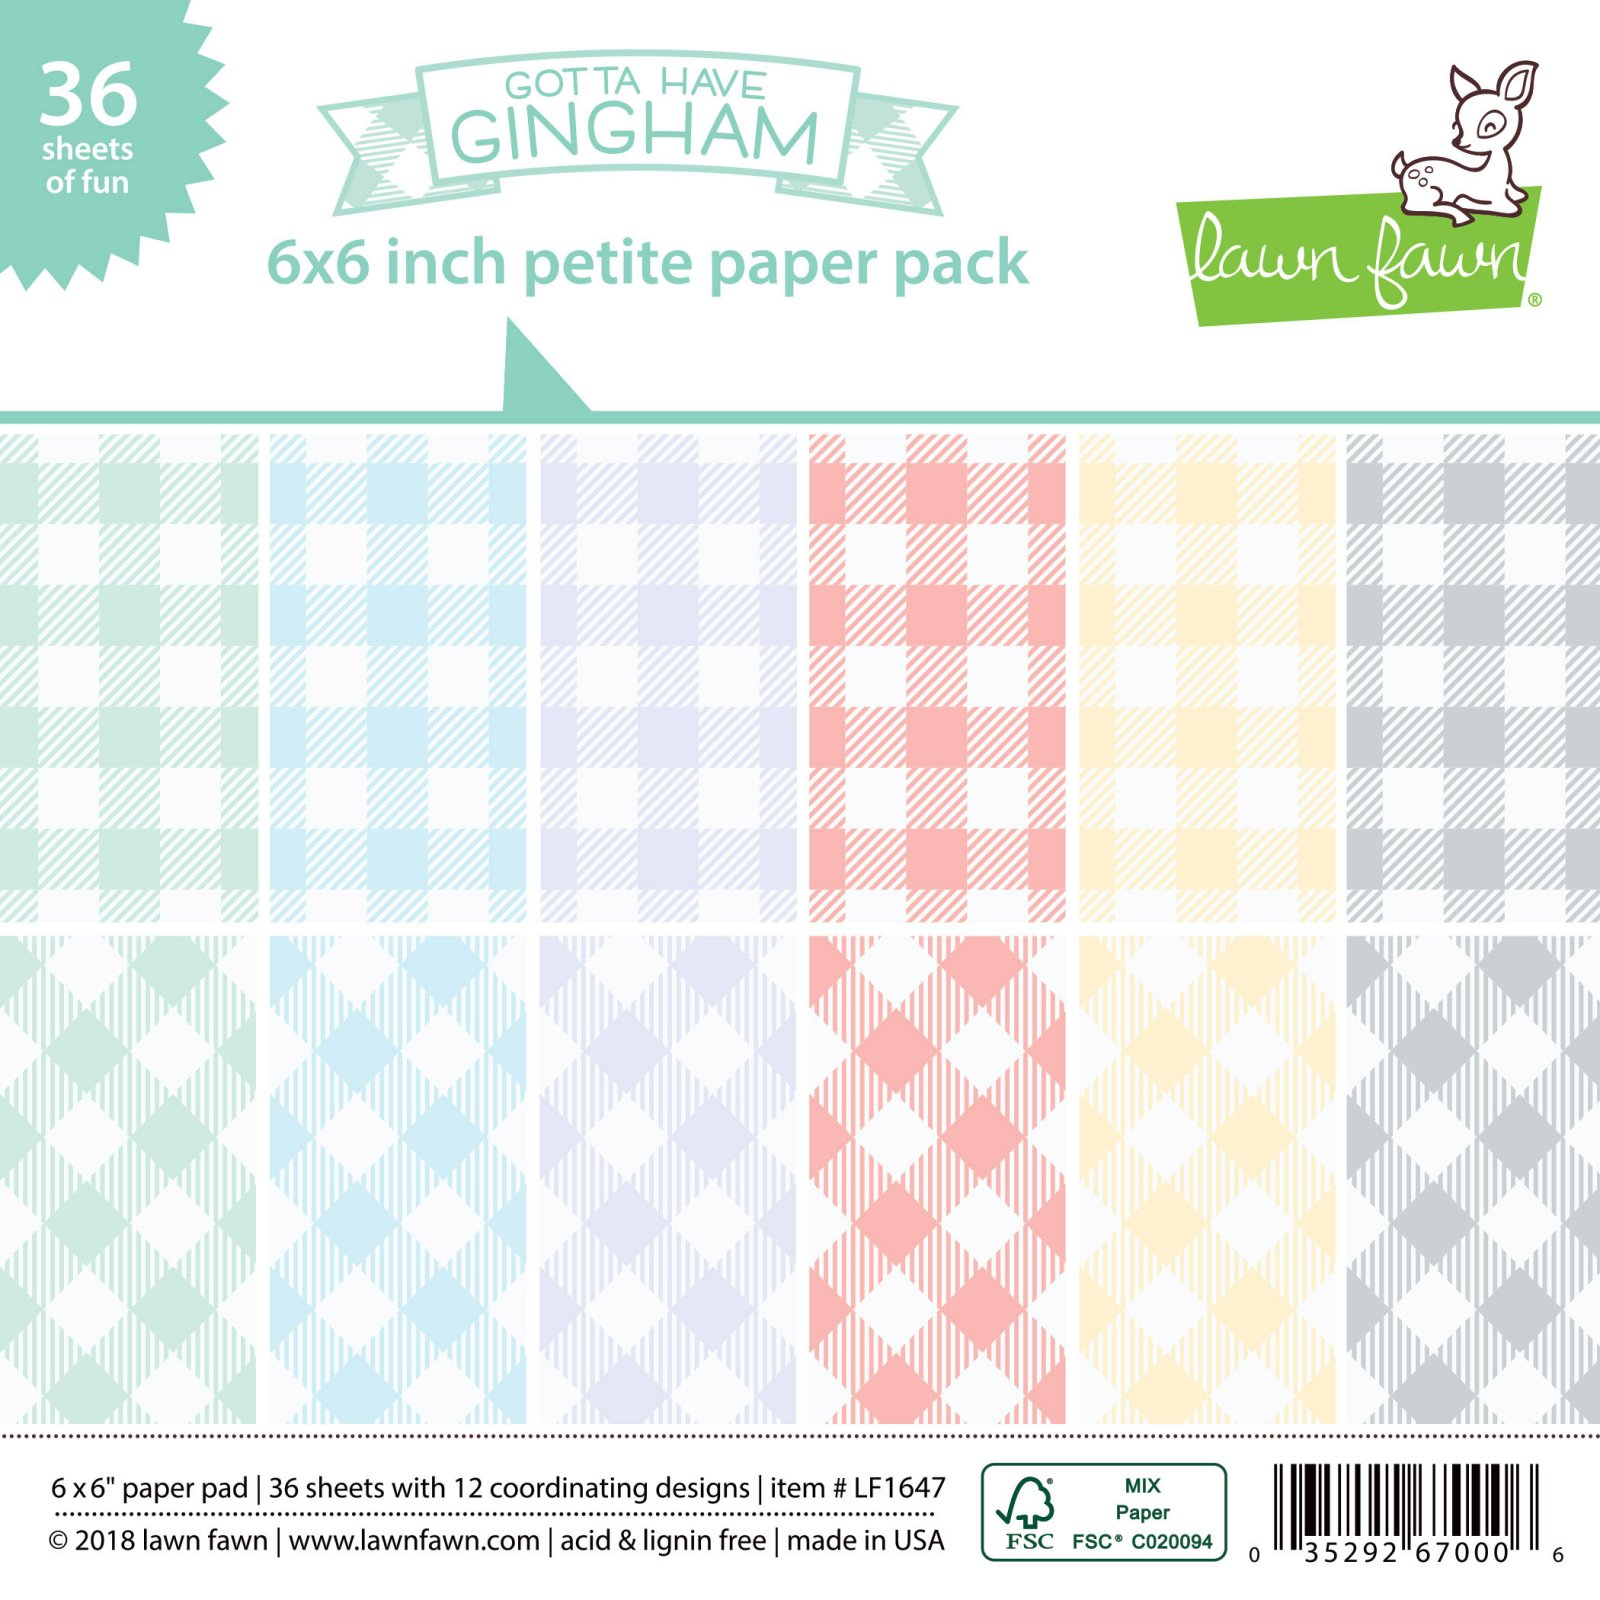 Lawn Fawn - Gotta Have Gingham 6x6 Paper Pack